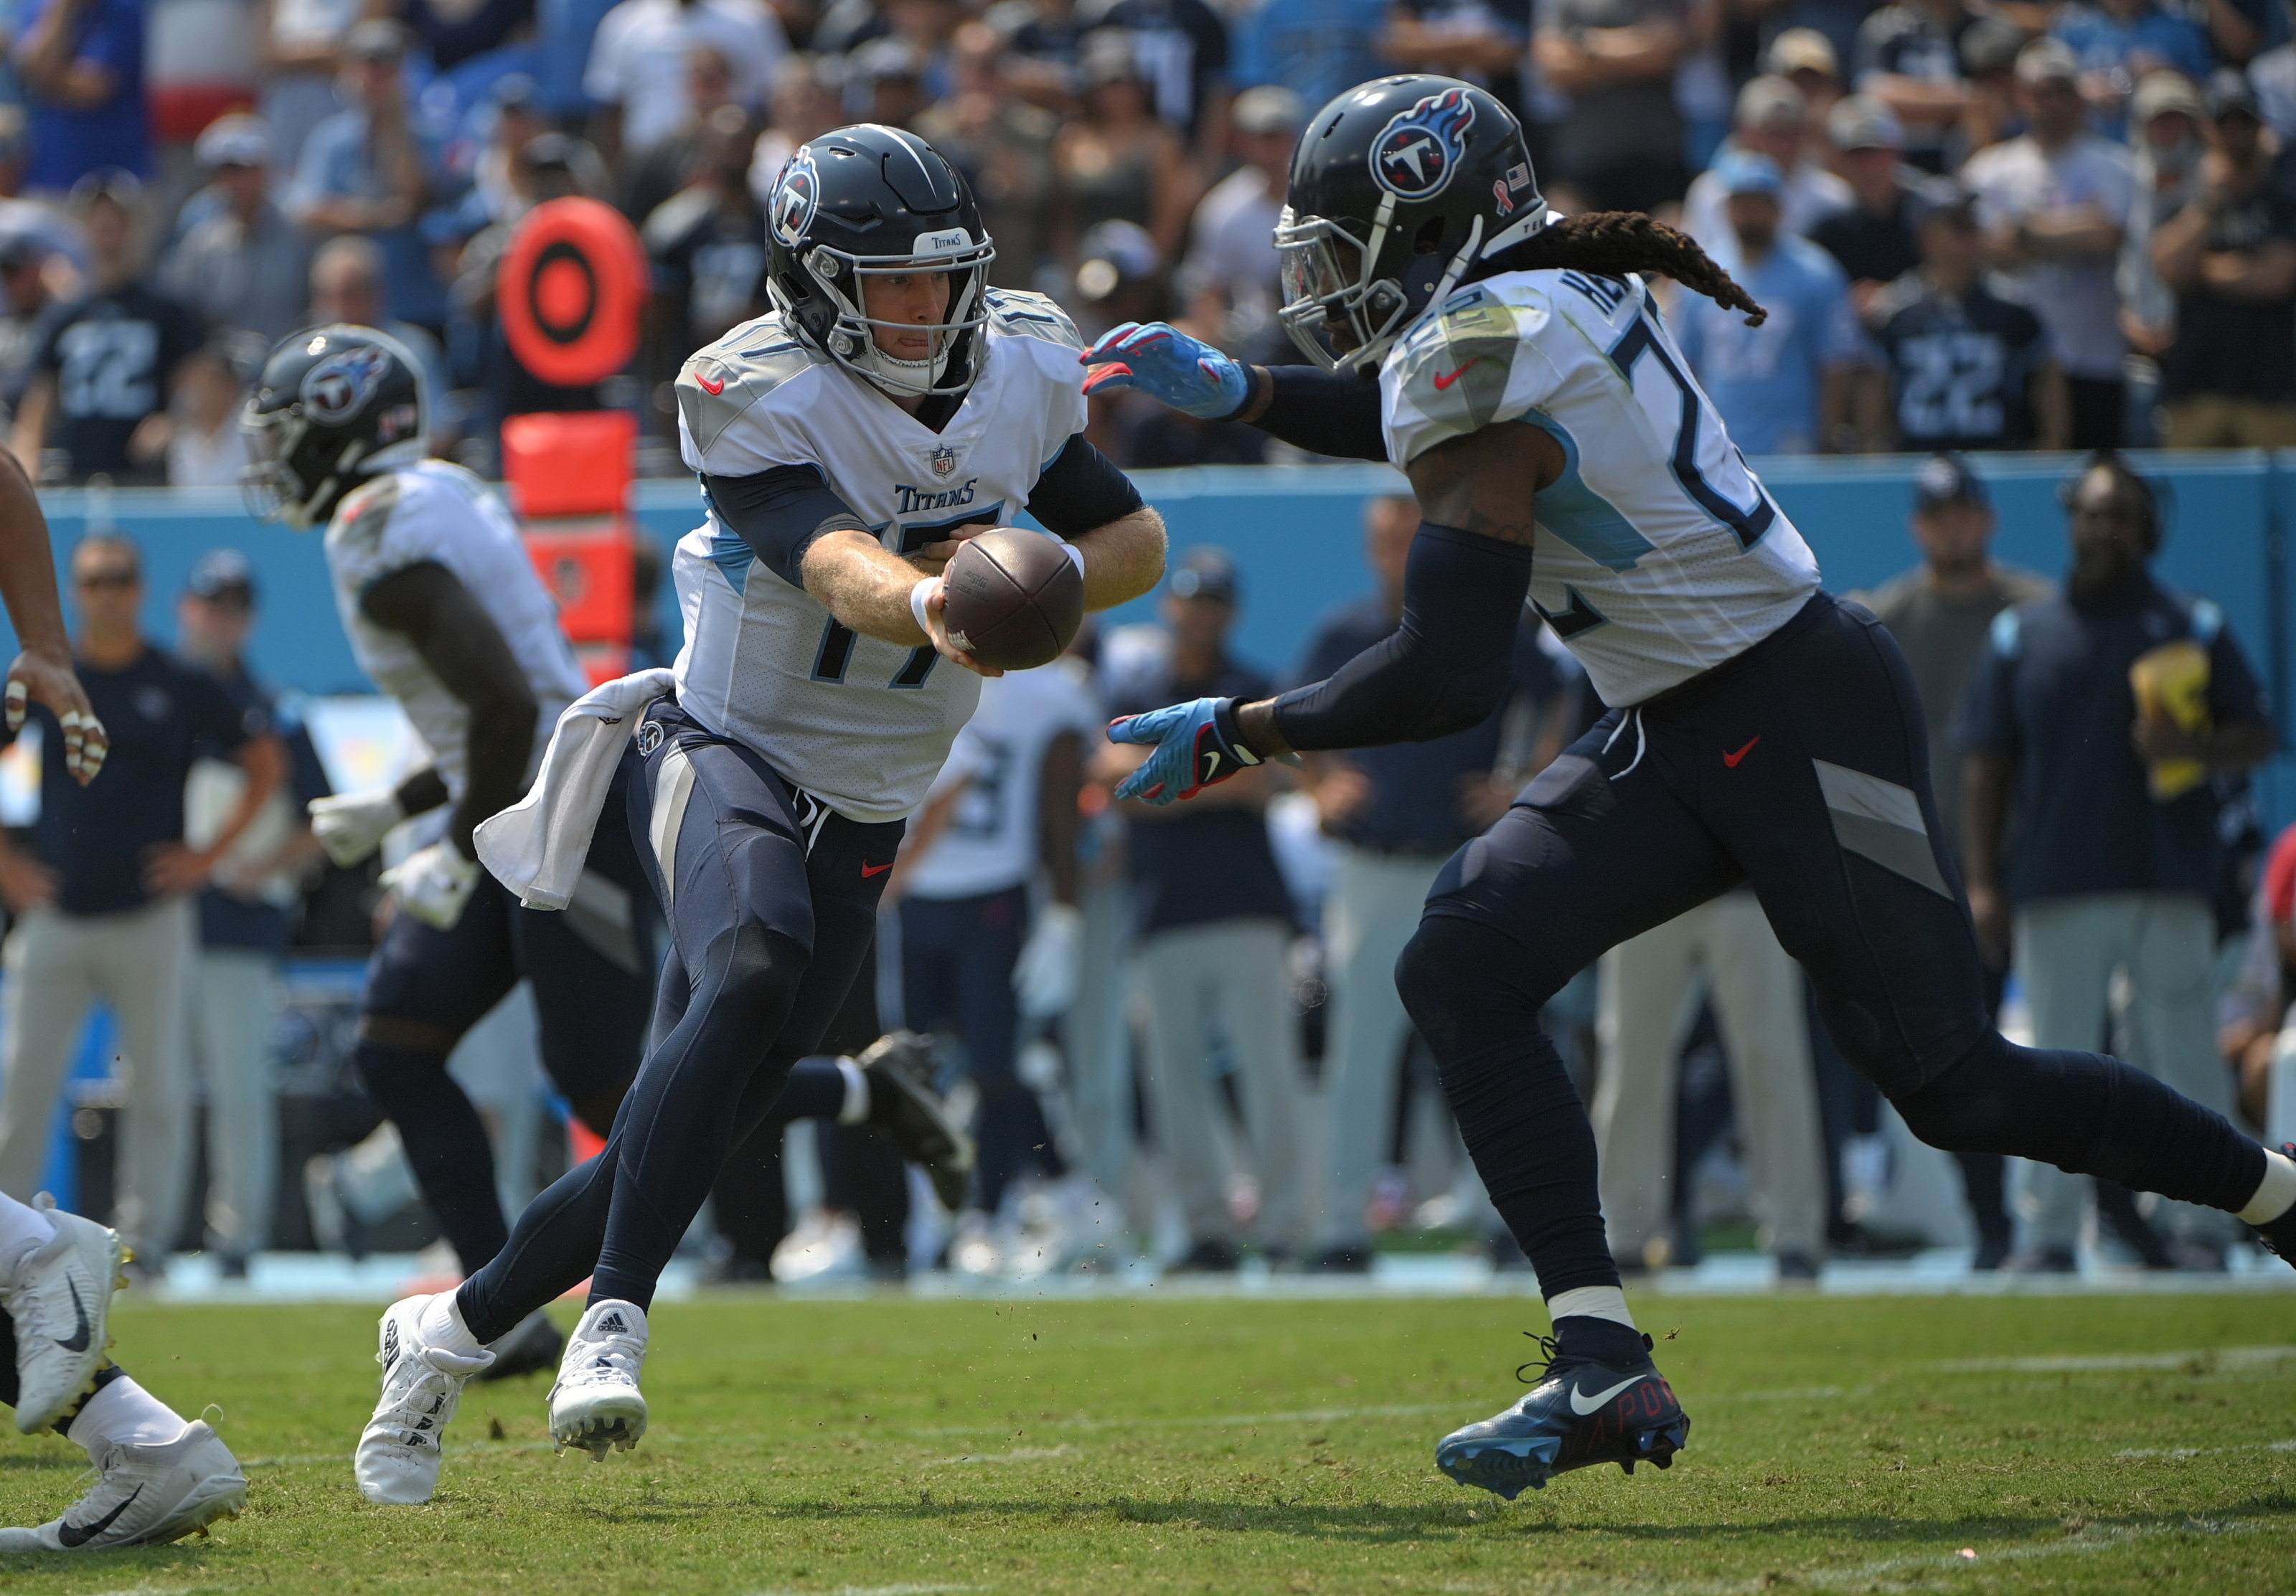 Derrick henry carried the ball 35 times for 182 yards and three touchdowns in sunday's week 2 win over the seahawks. Lceasl Pa Oylm